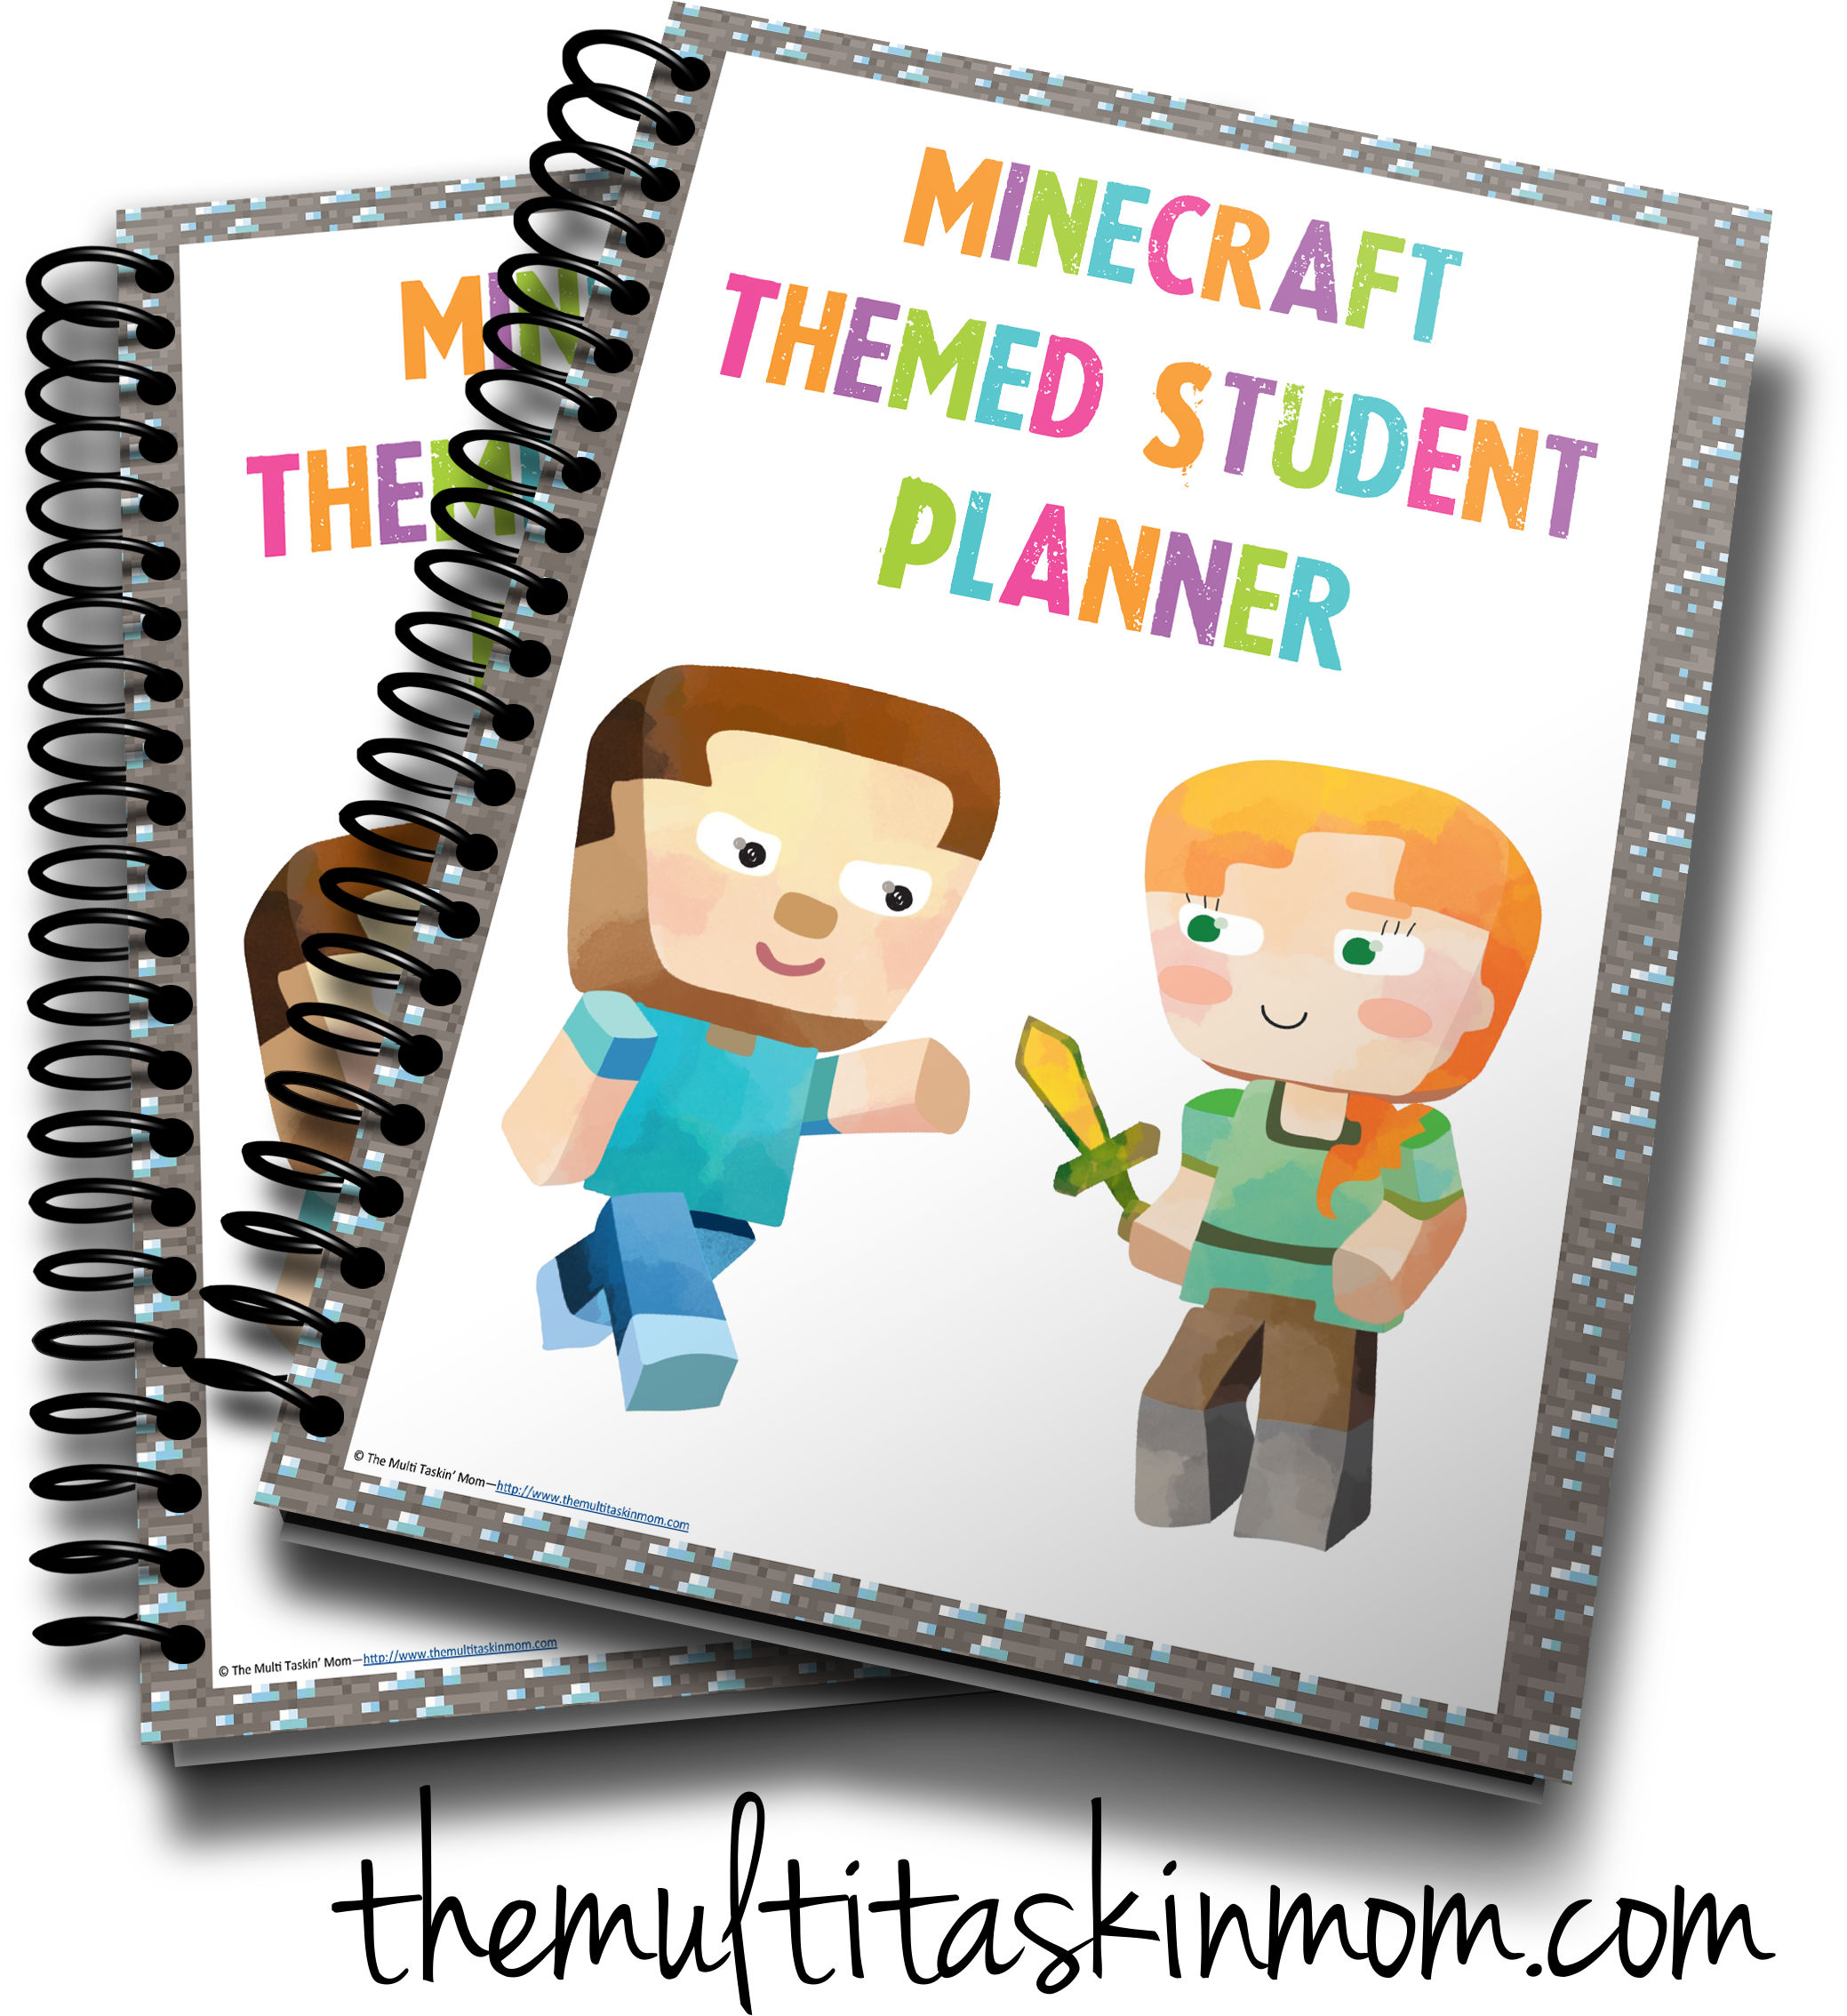 Planner clipart product planning. Minecraft student the multi